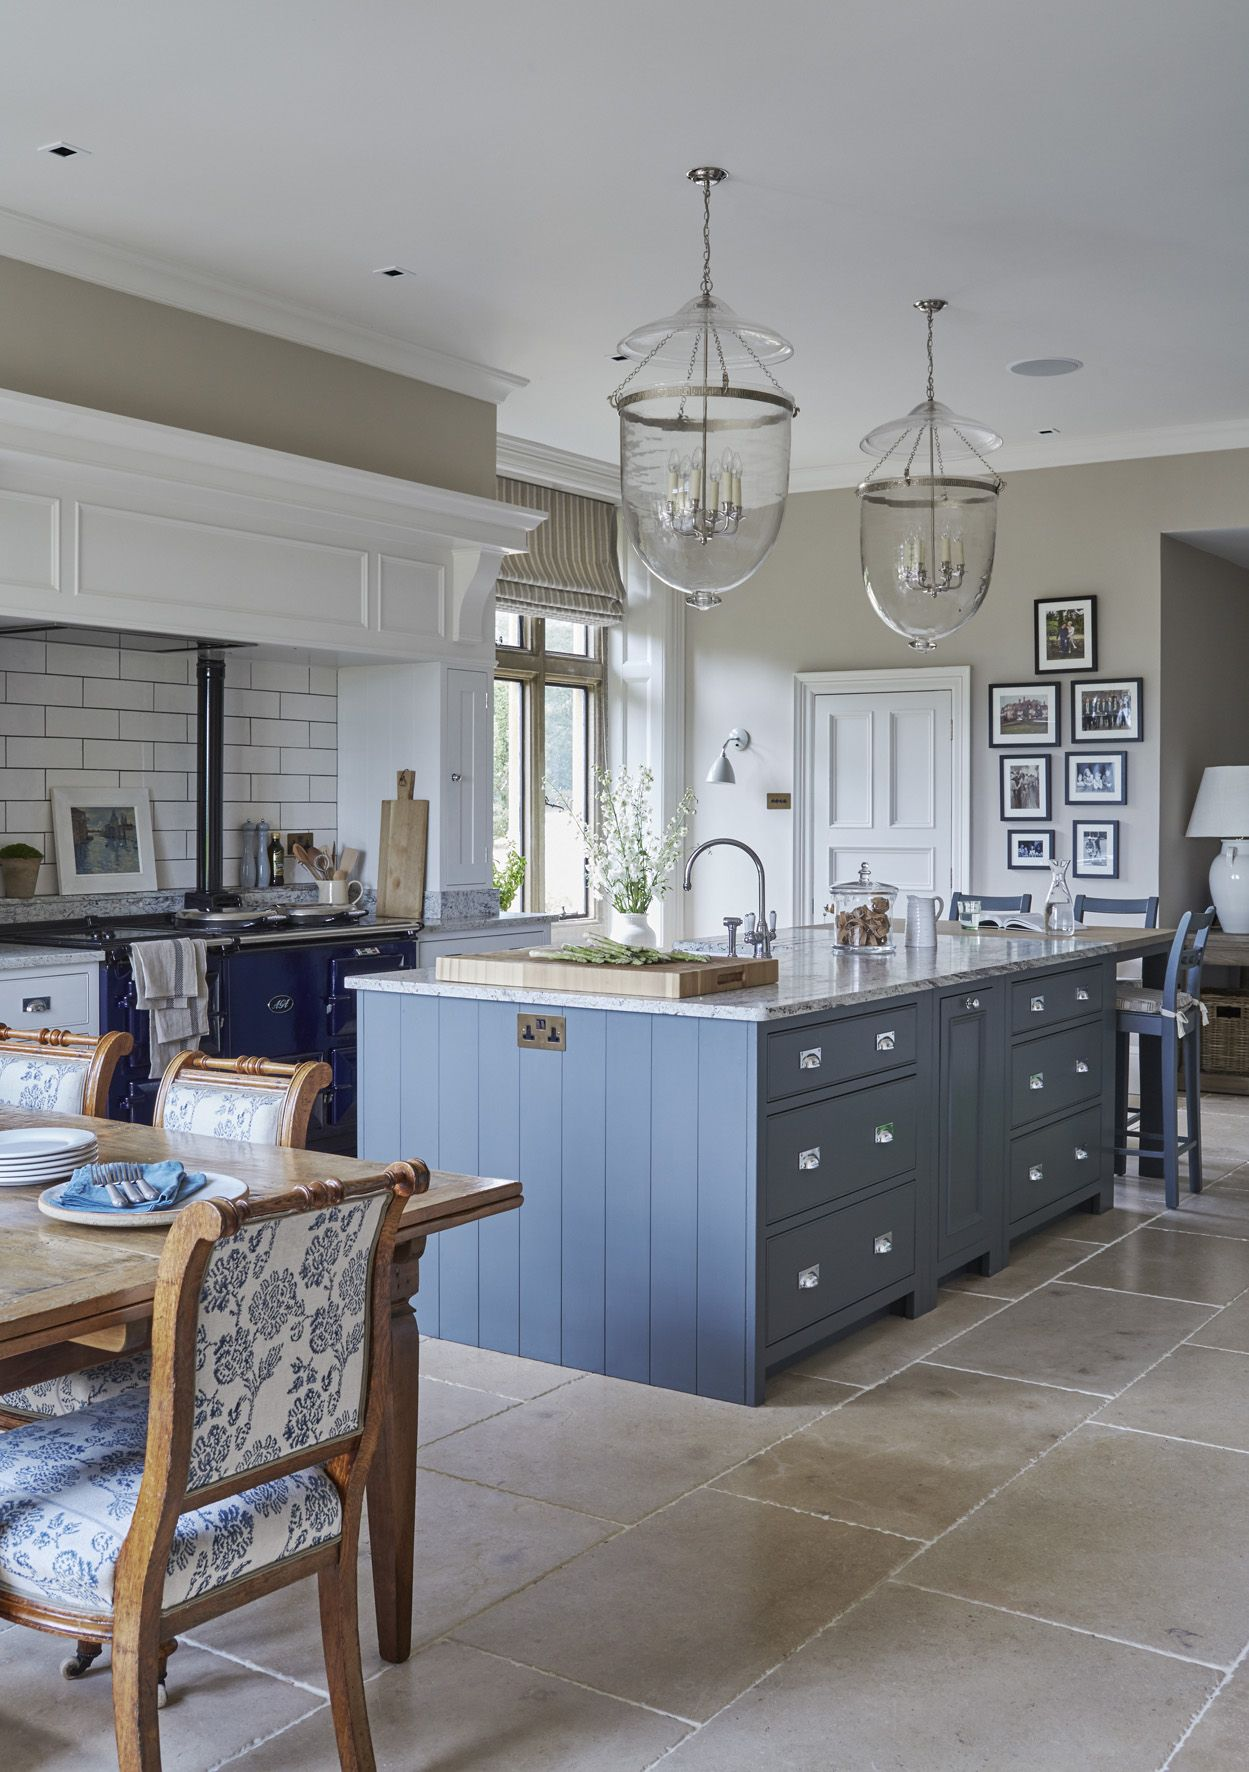 Sims Hilditch Interior Design  New Forest Manor House  Love My Fascinating Design New Kitchen Design Inspiration